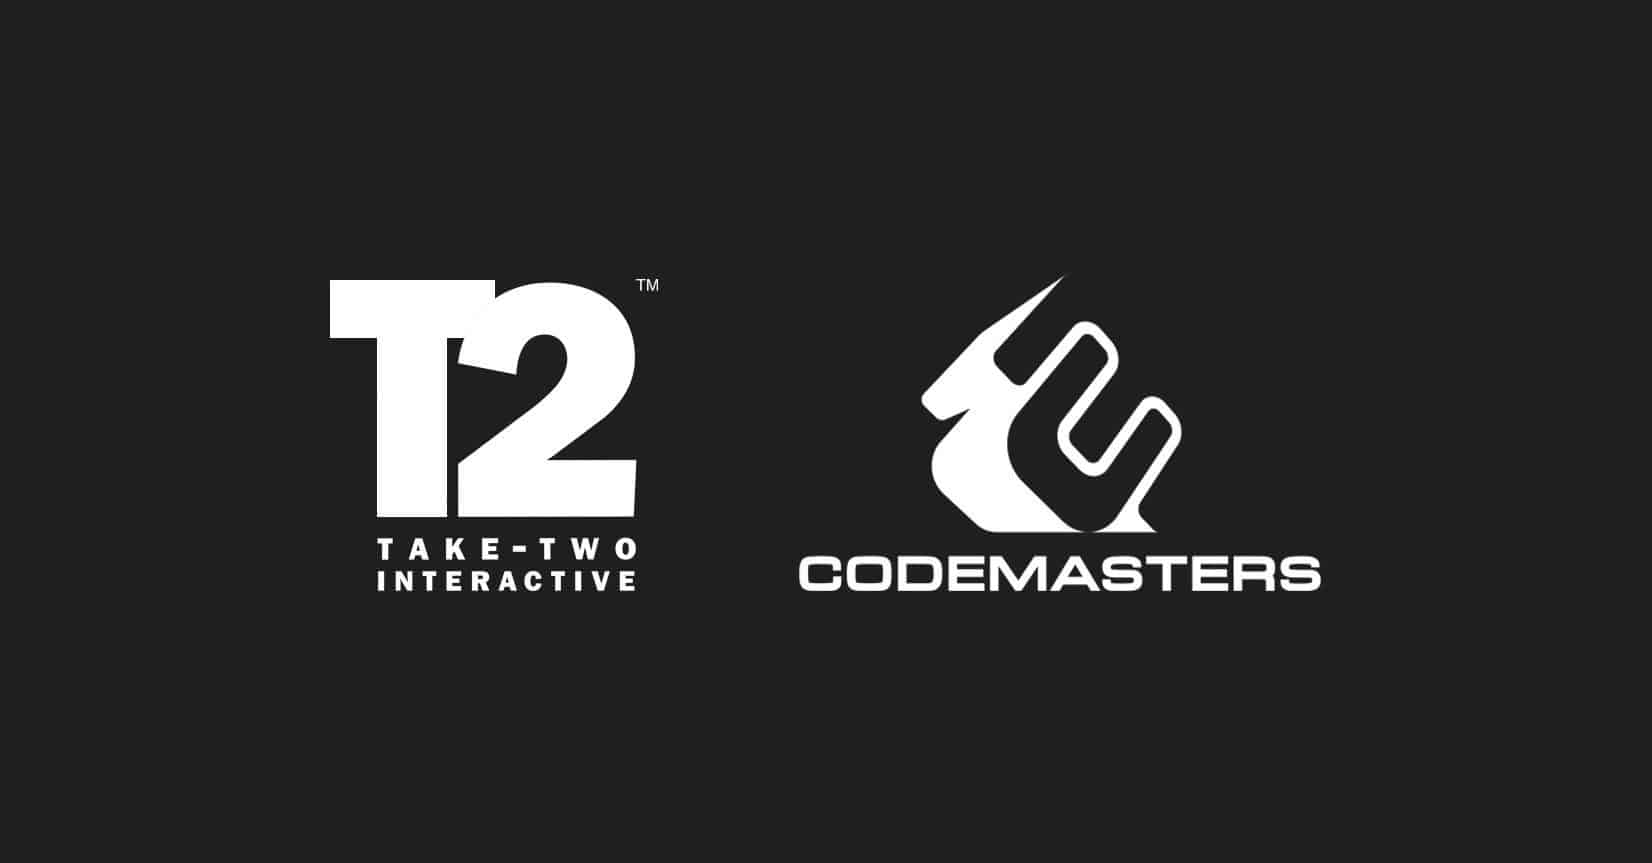 Take-Two-Interactive-Codemasters-rachat